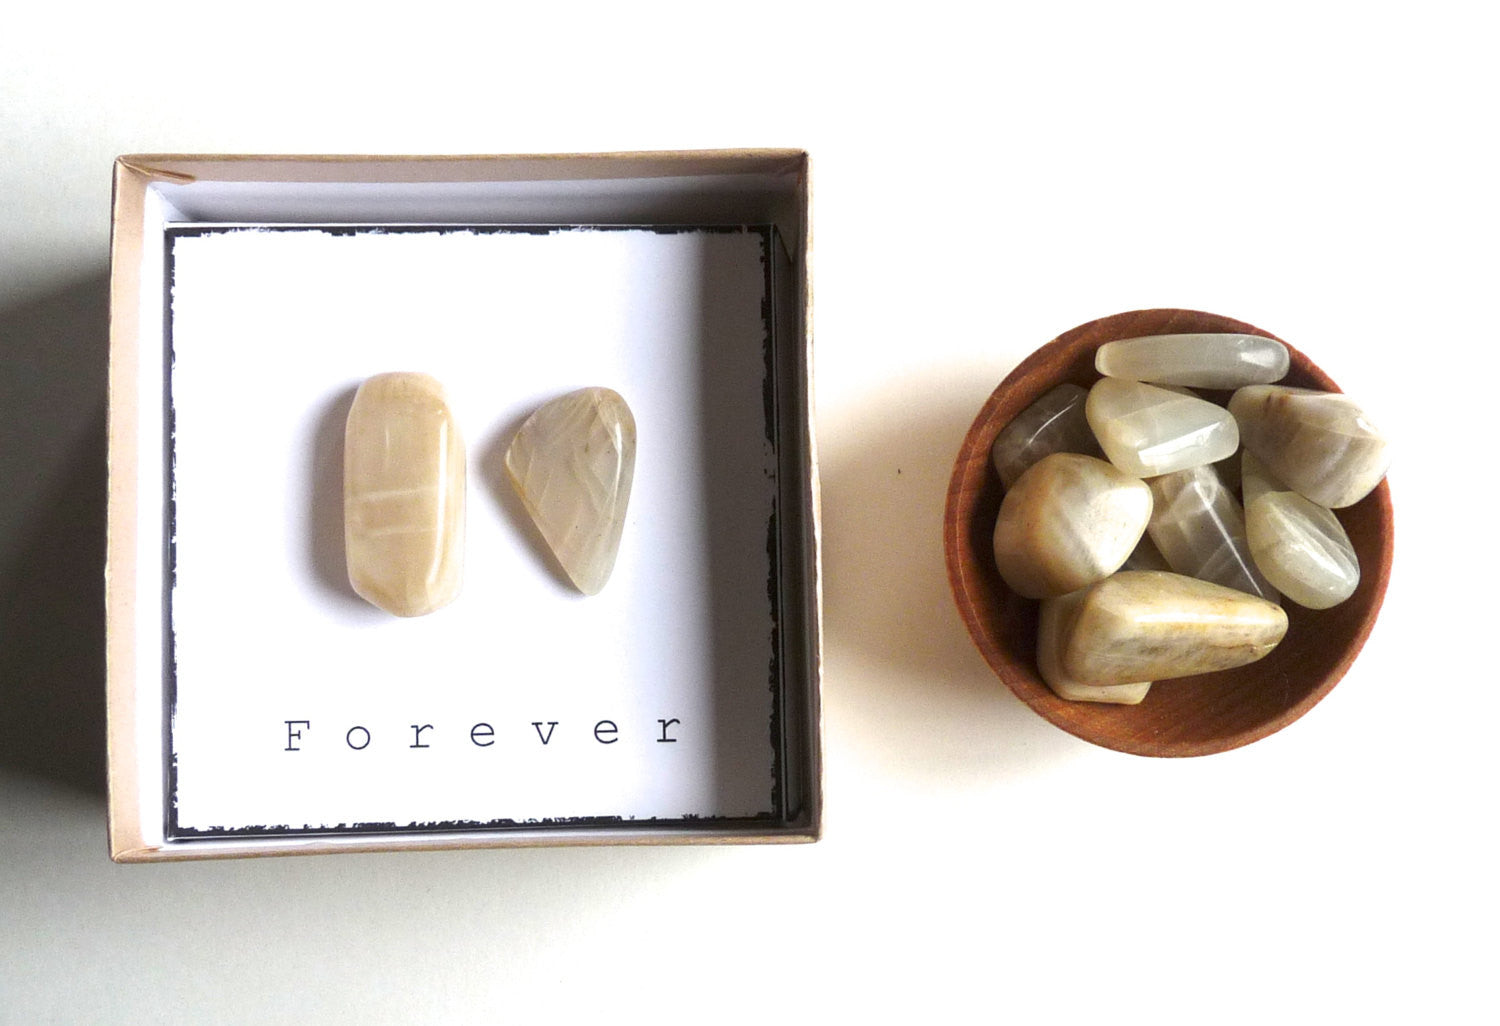 F O R E V E R | MOONSTONE - intention stone gift box